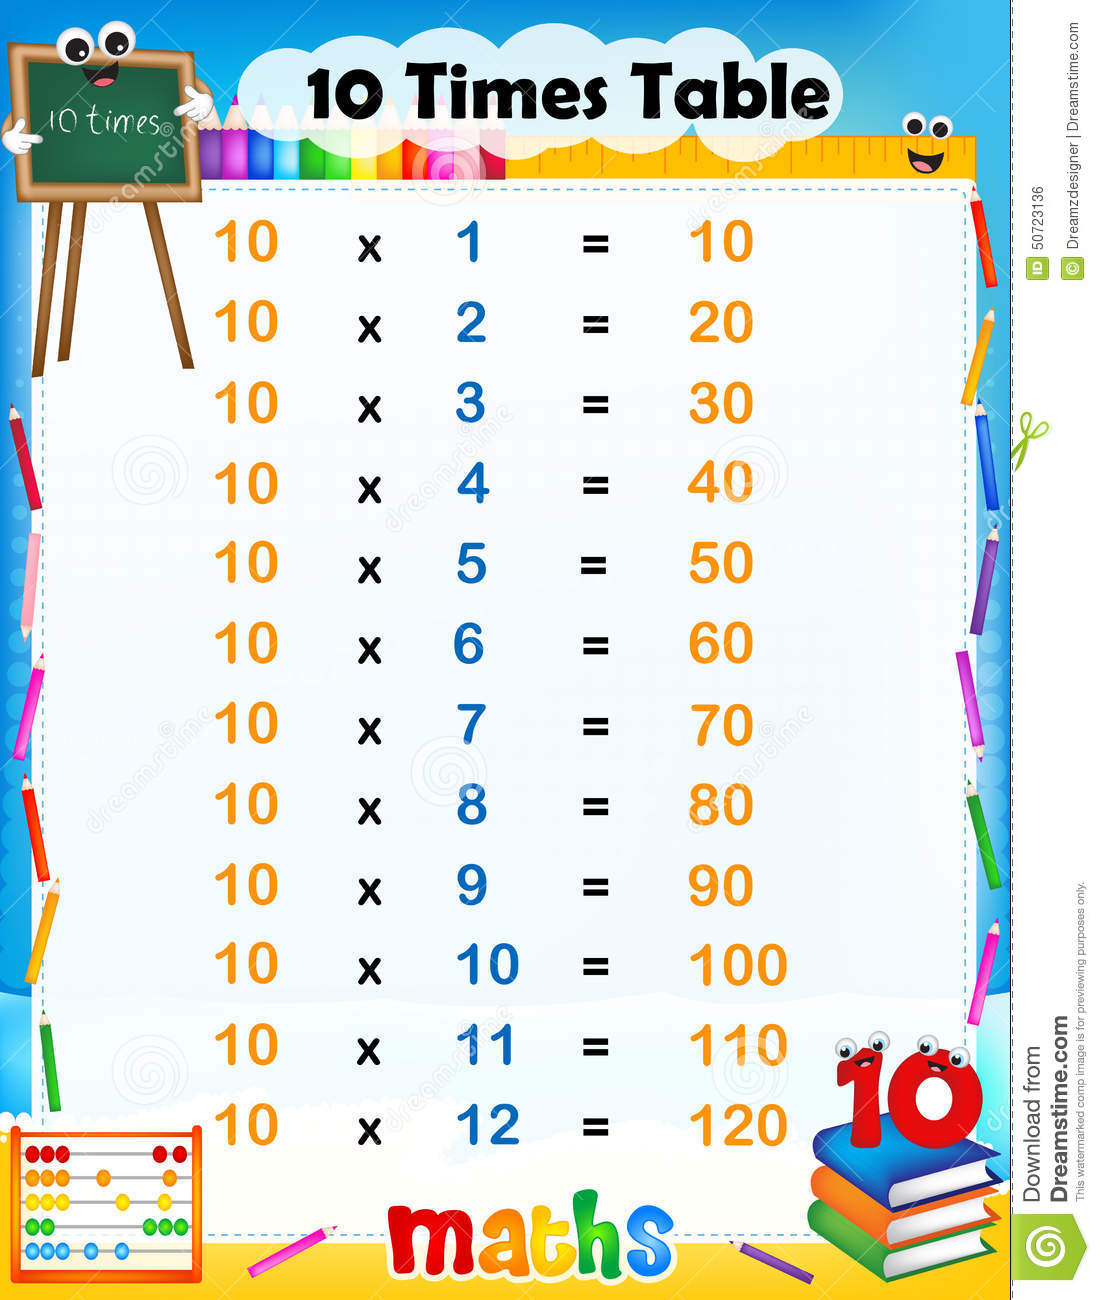 10 Times Table Stock Vector Illustration Of Subtraction